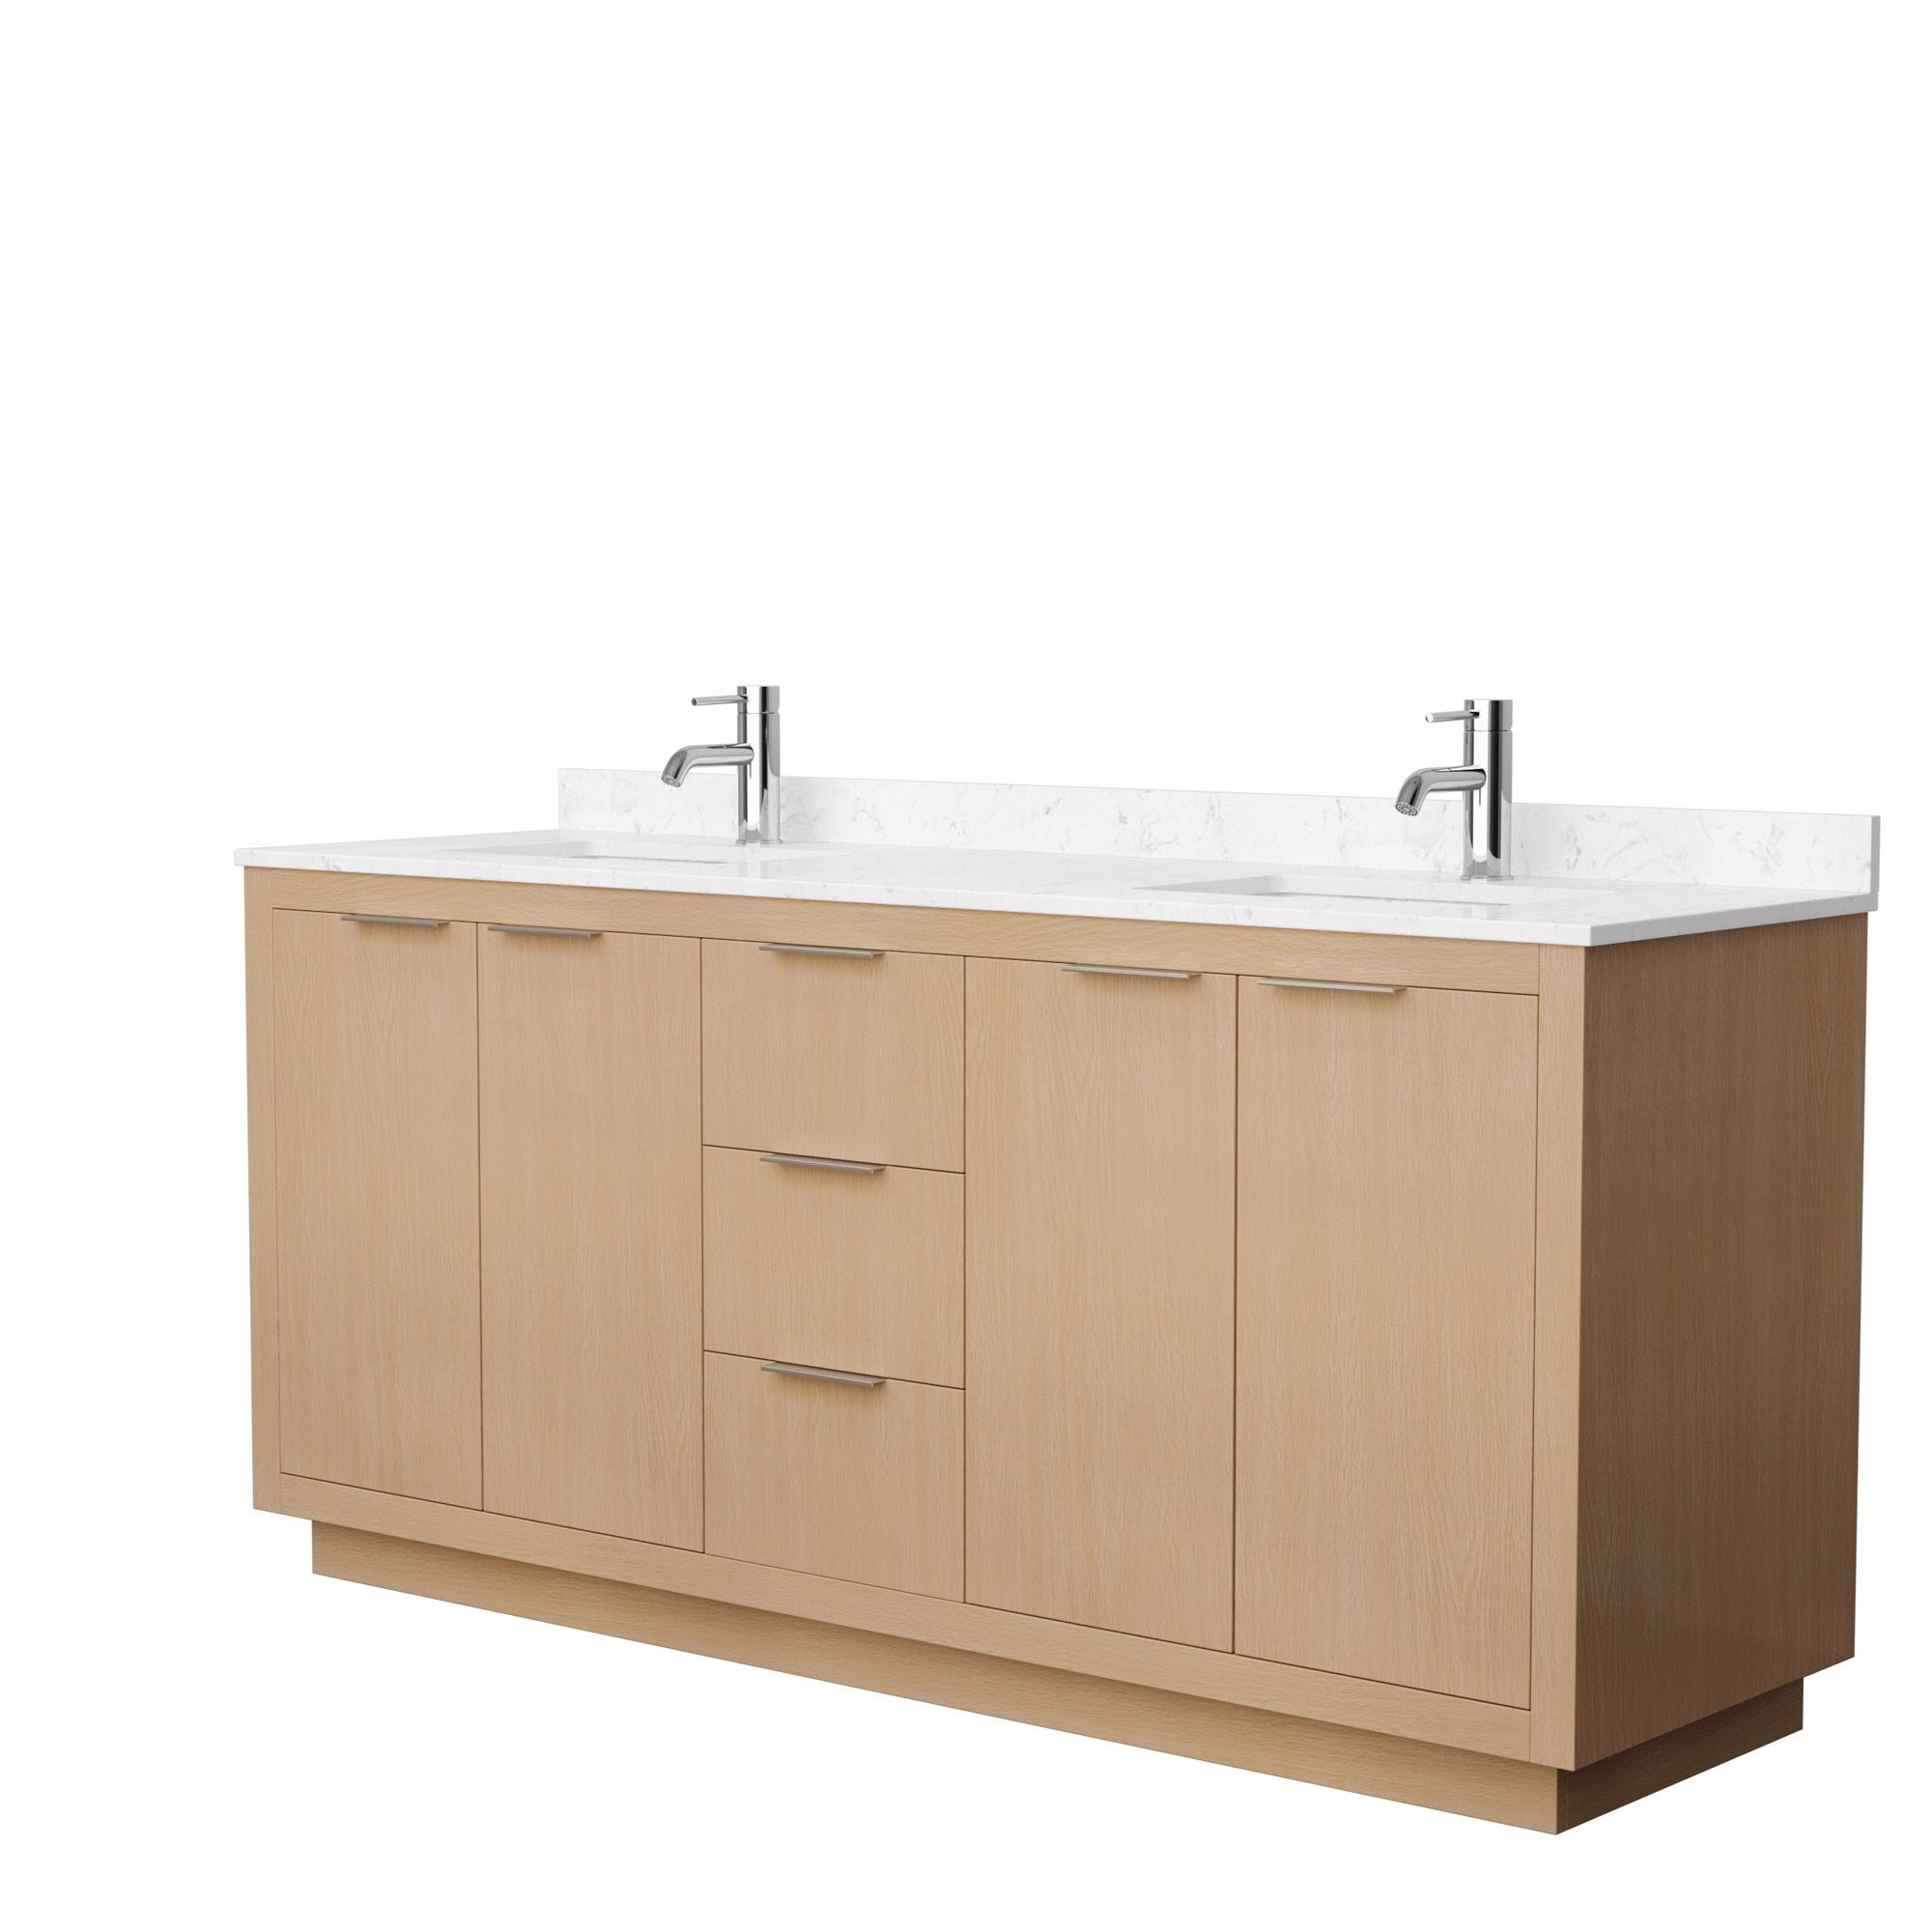 "72"" Double Bathroom Vanity in Light Straw with Countertop and Hardware Options"